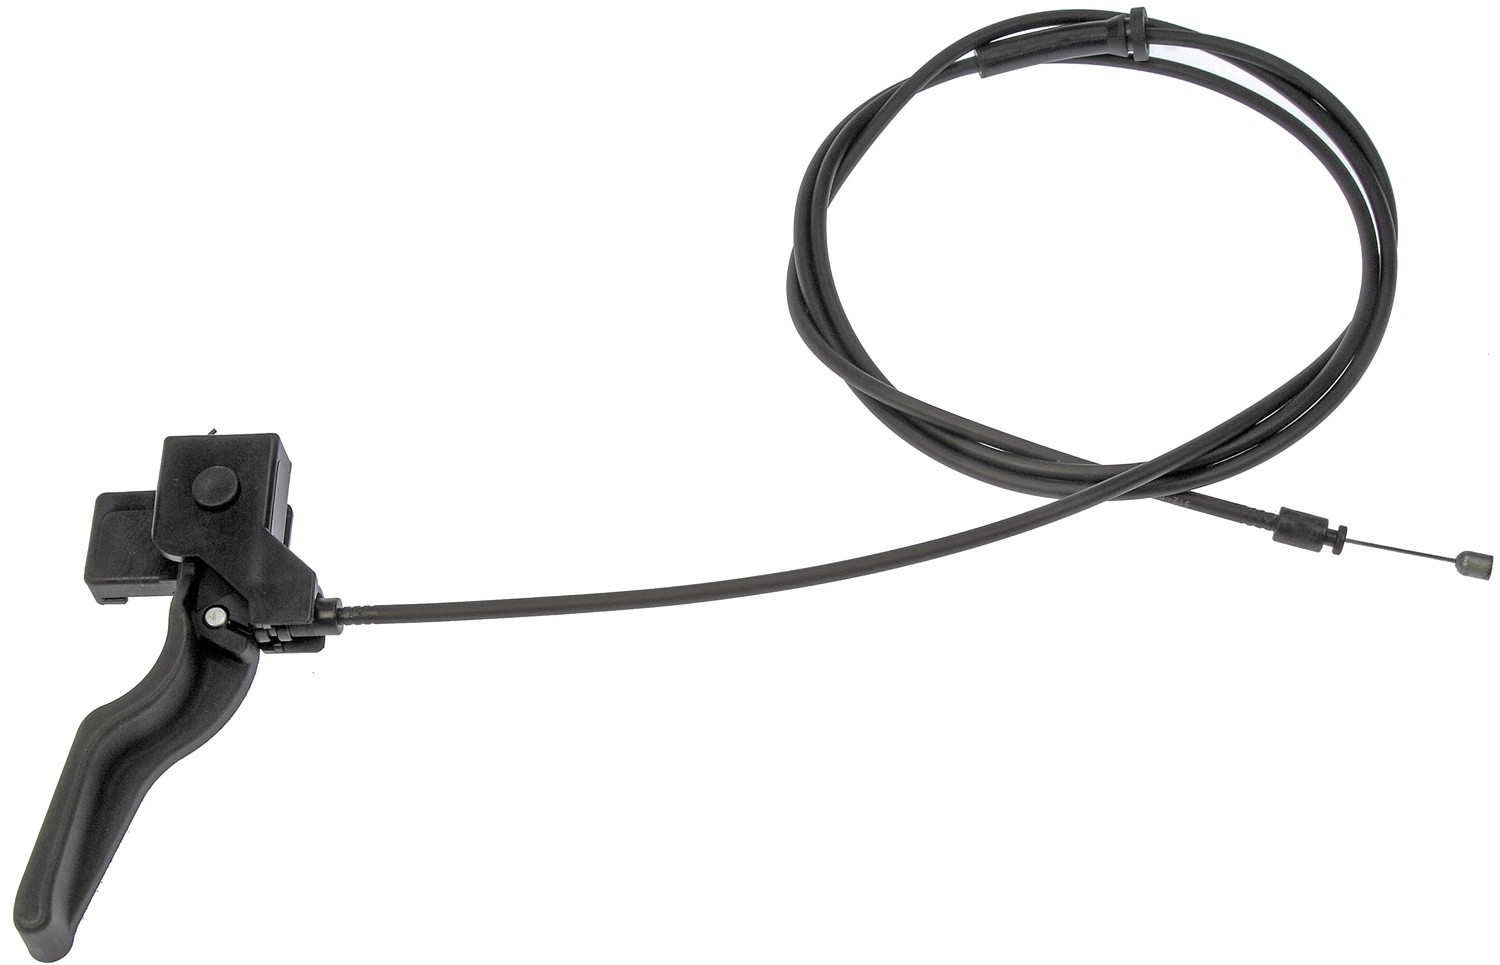 DORMAN OE SOLUTIONS - Hood Release Cable - DRE 912-071